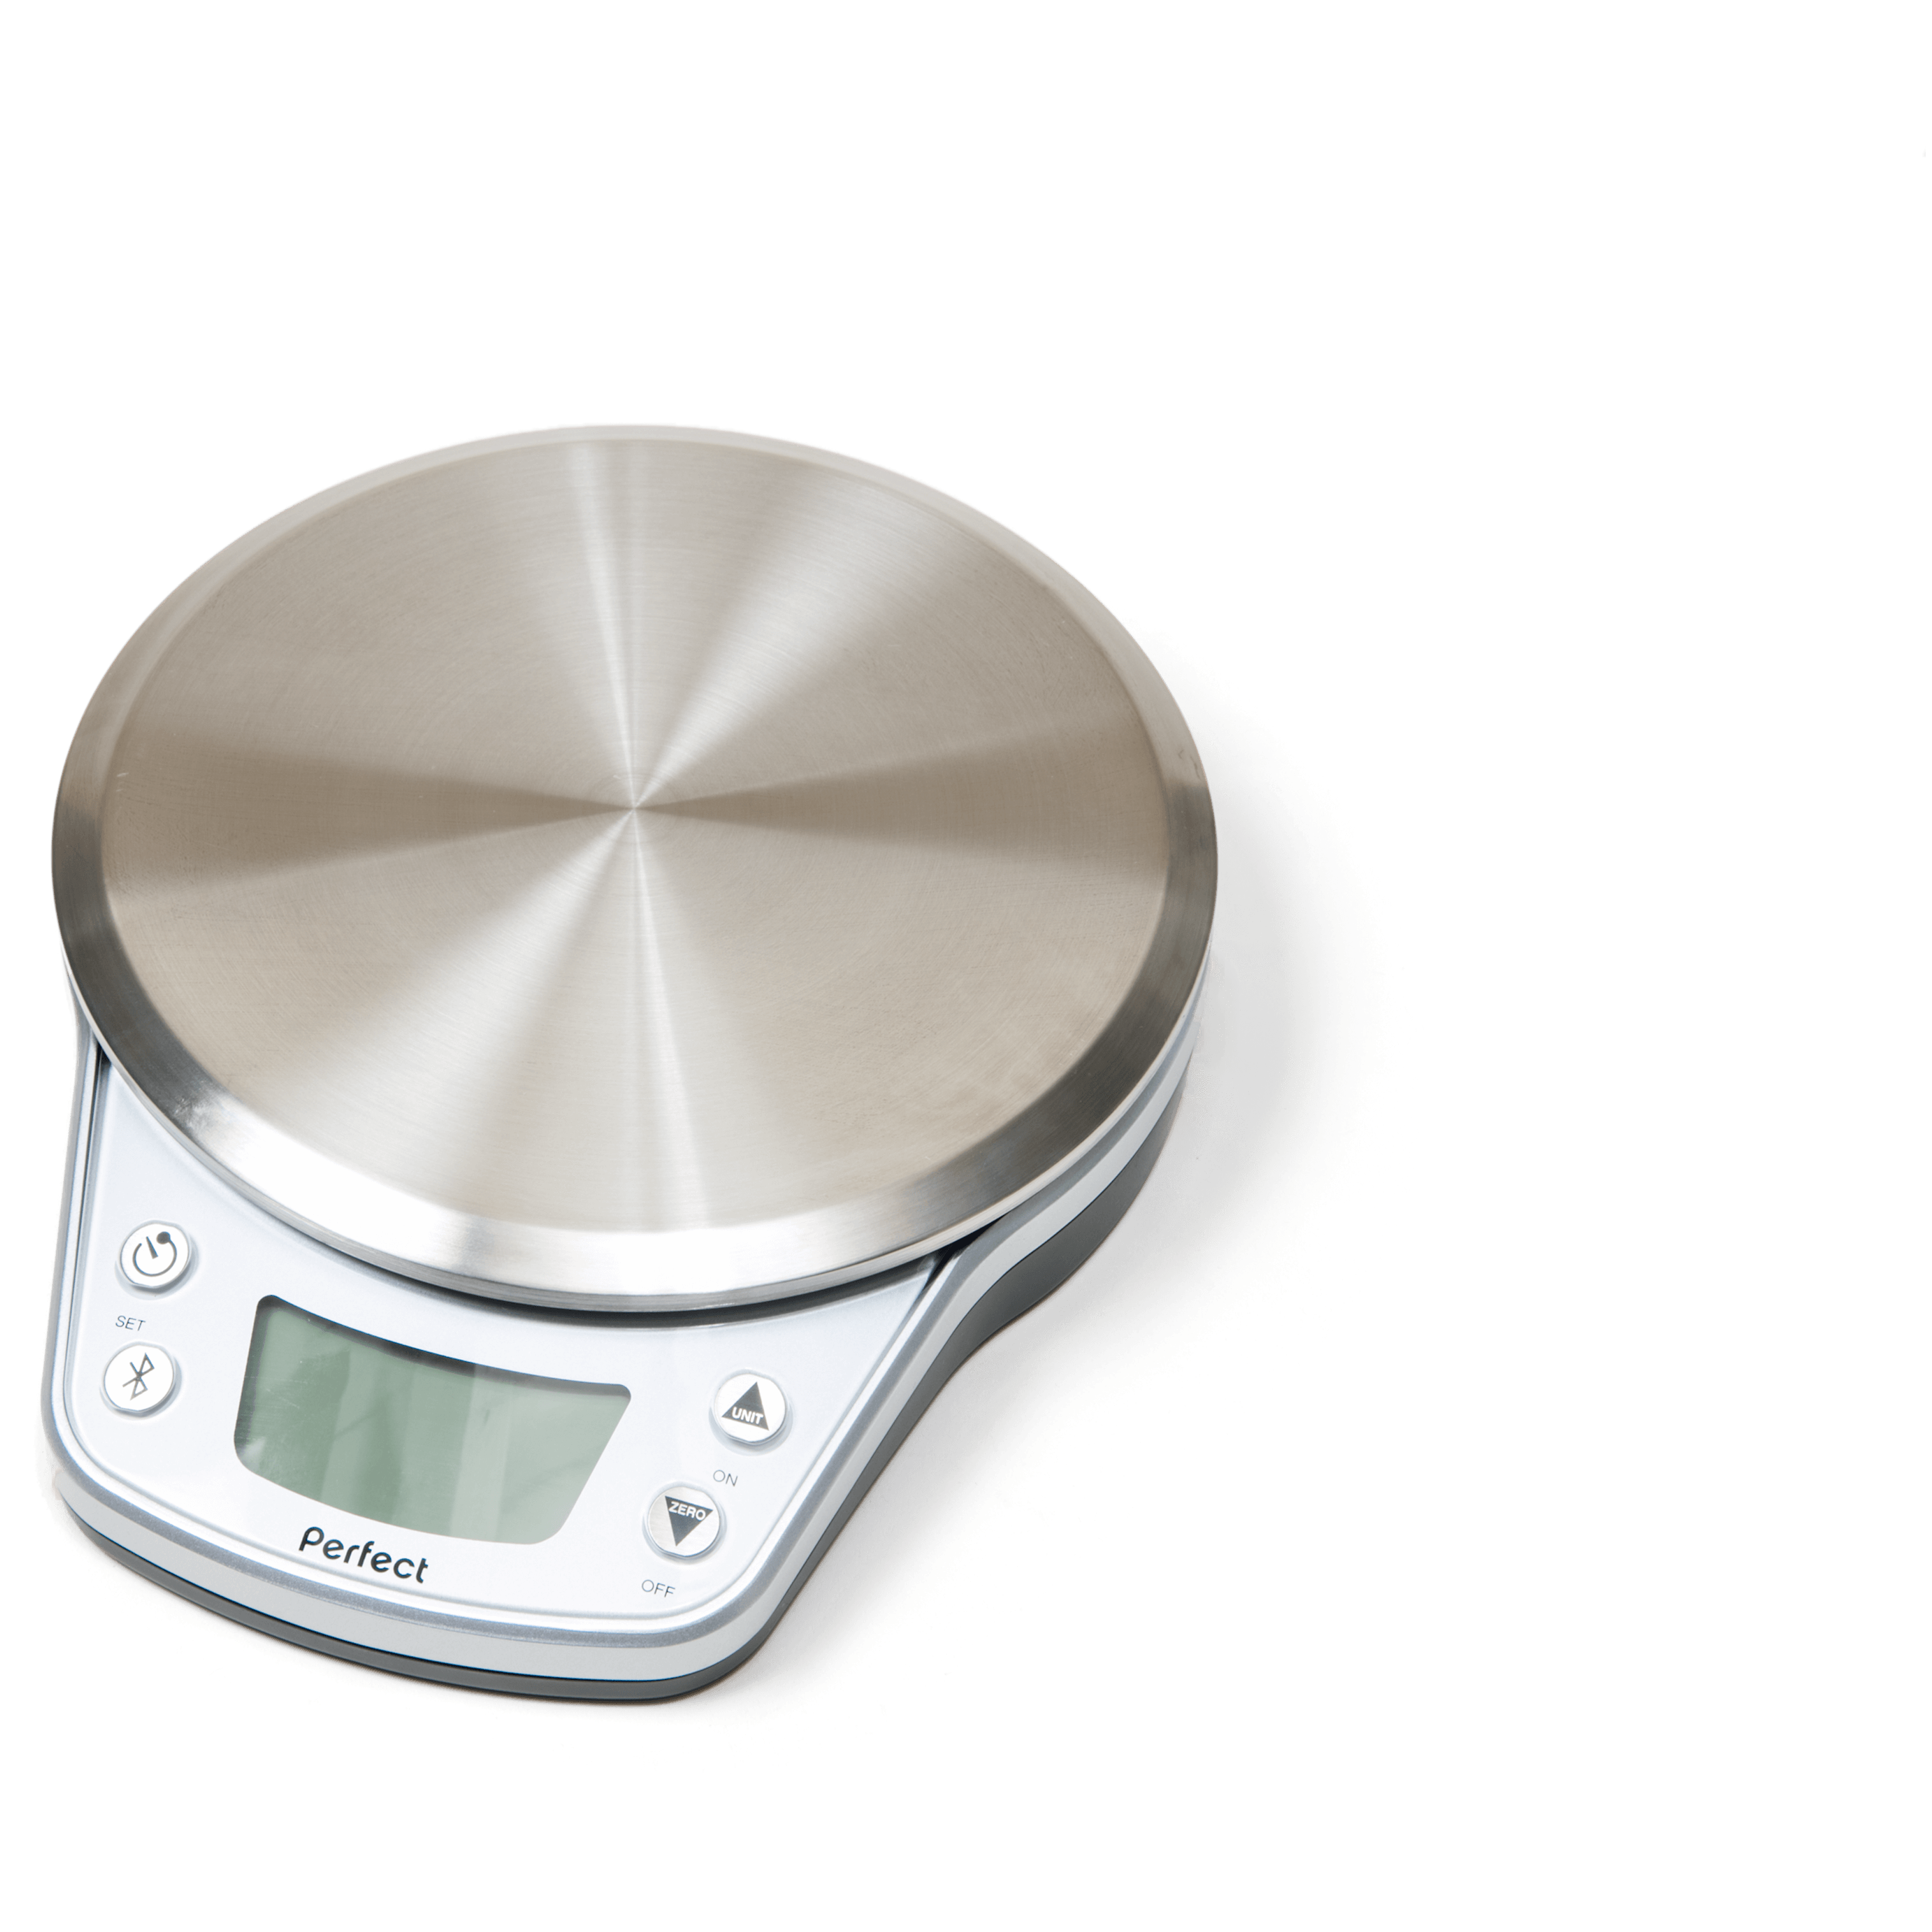 Sil digital 20scale perfect 20company 20perfect 20bake for Perfect bake scale system